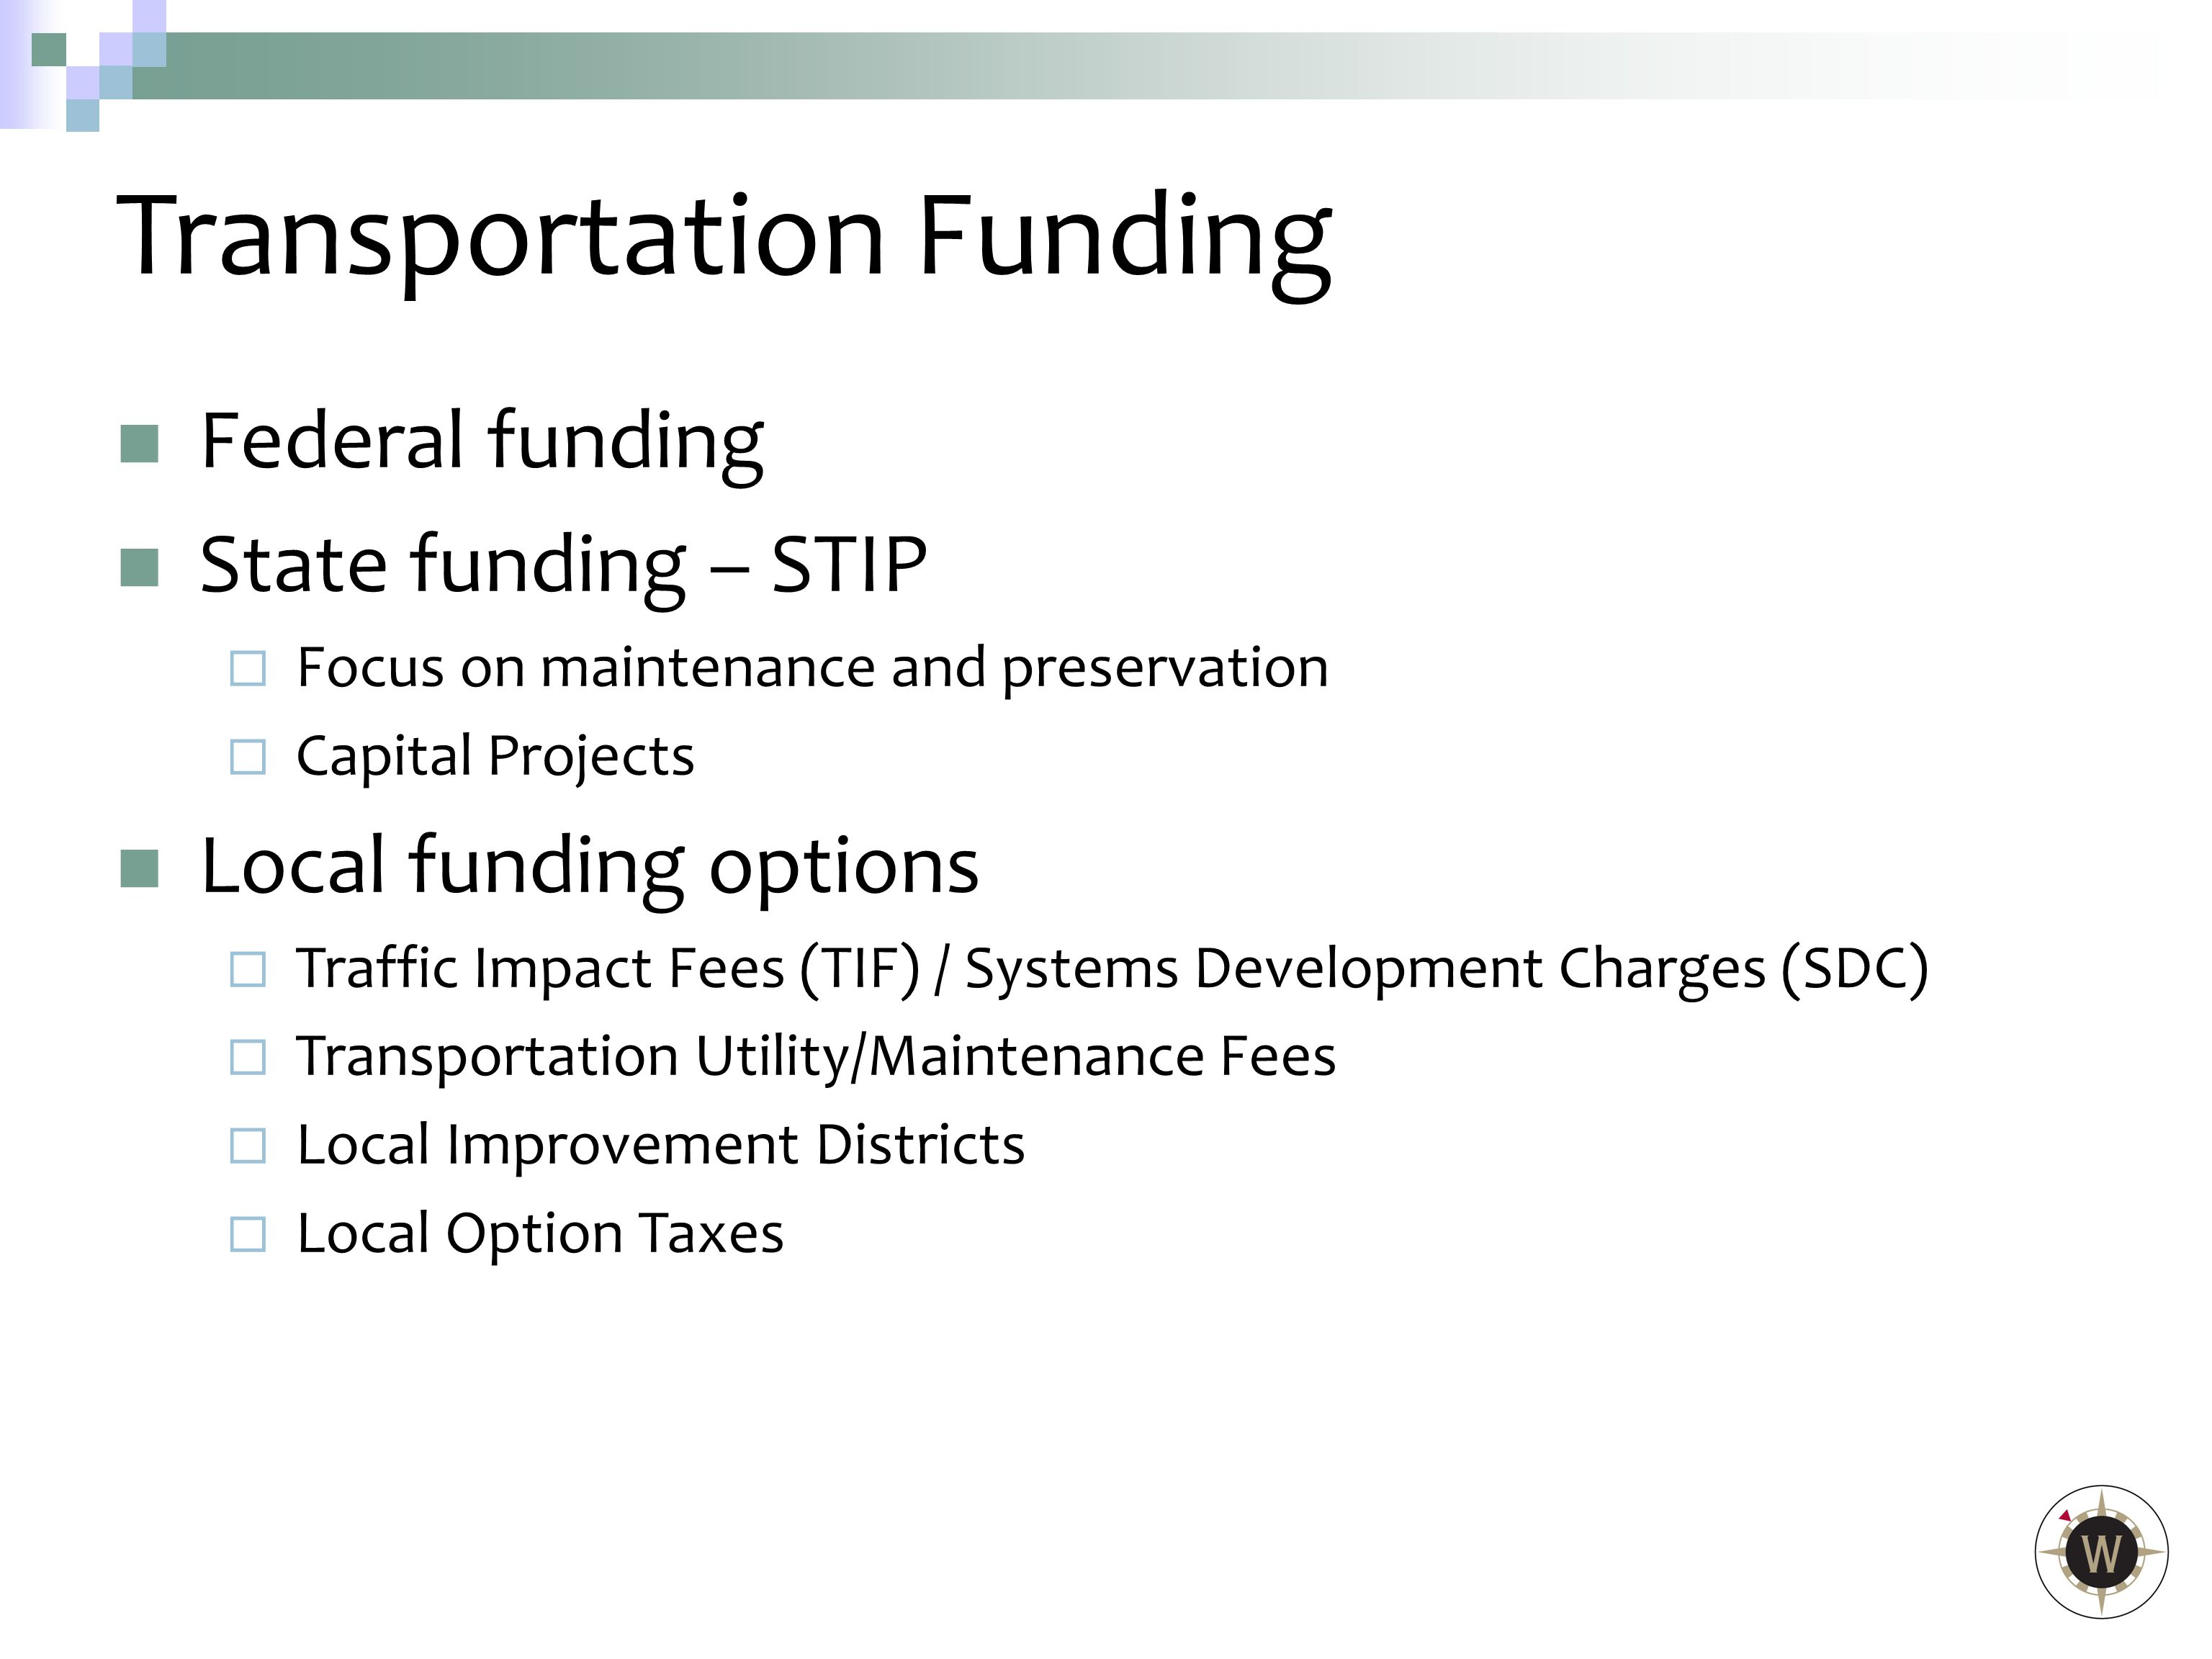 Federal funding State funding – STIP  Focus on maintenance and preservation  Capital Projects Local funding options  Traffic Impact Fees (TIF) / Systems Development Charges (SDC)  Transportation Utility/Maintenance Fees  Local Improvement Districts  Local Option Taxes Transportation Funding